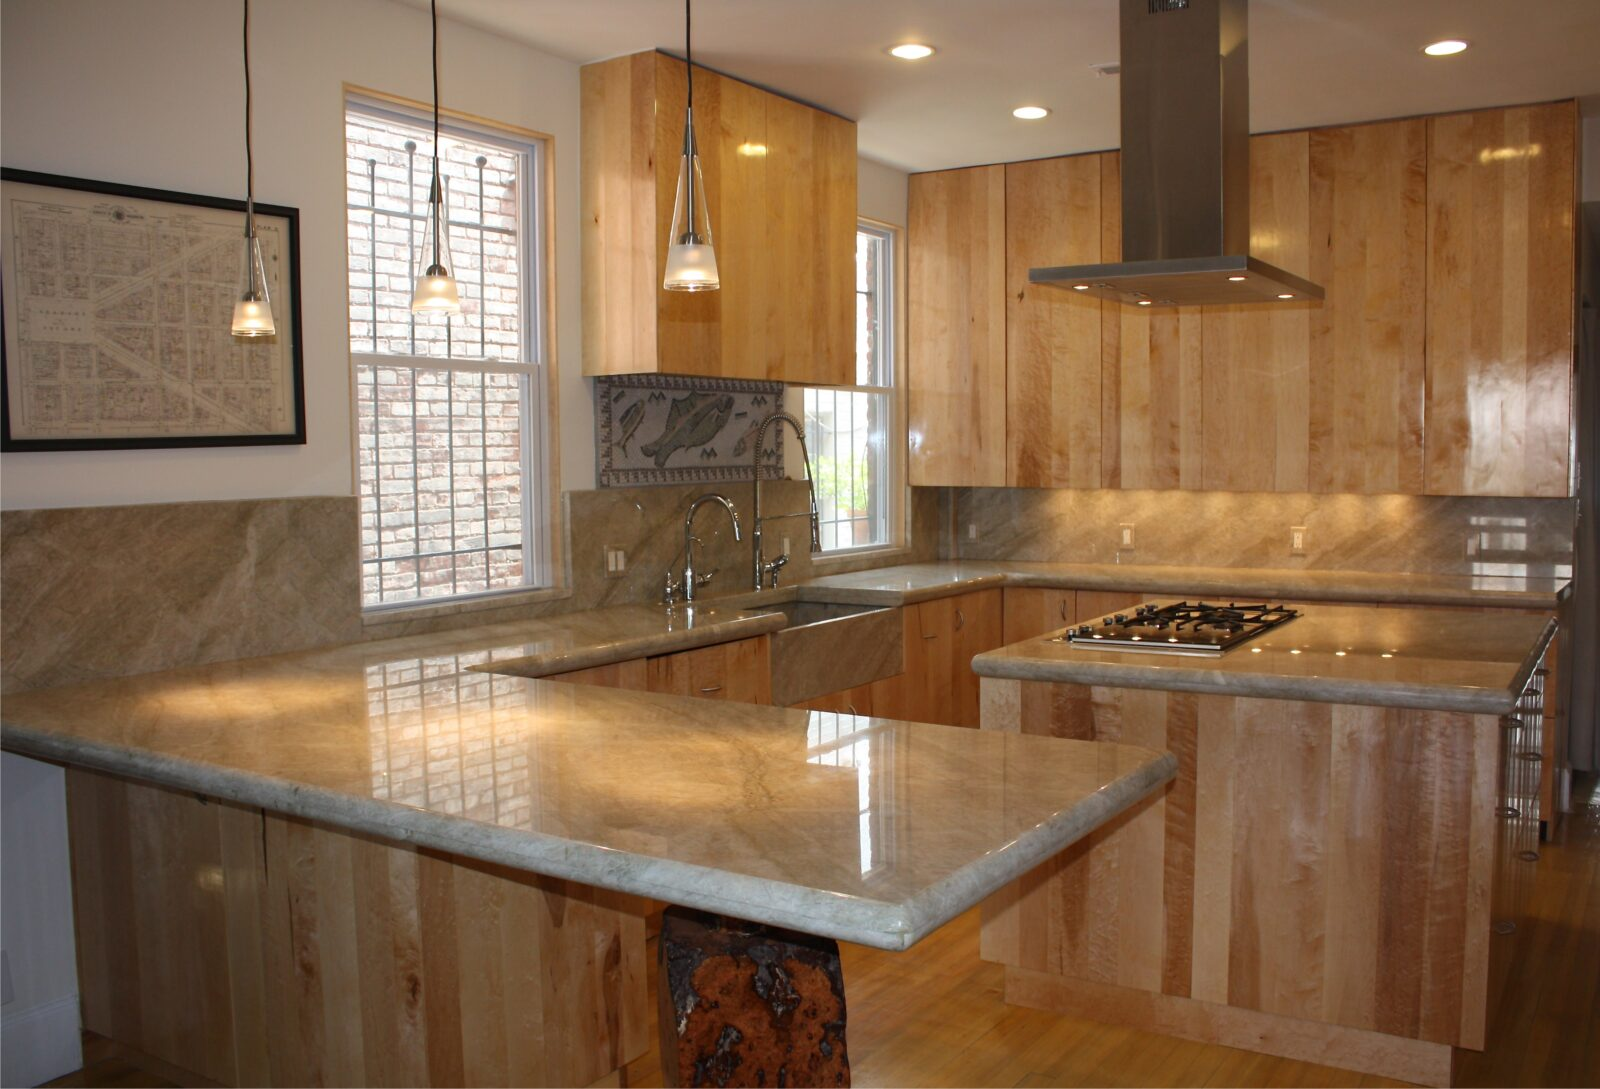 Kitchen Countertops Of Kitchen Cabinets Phoenix Refinishing Bravo Resurfacing